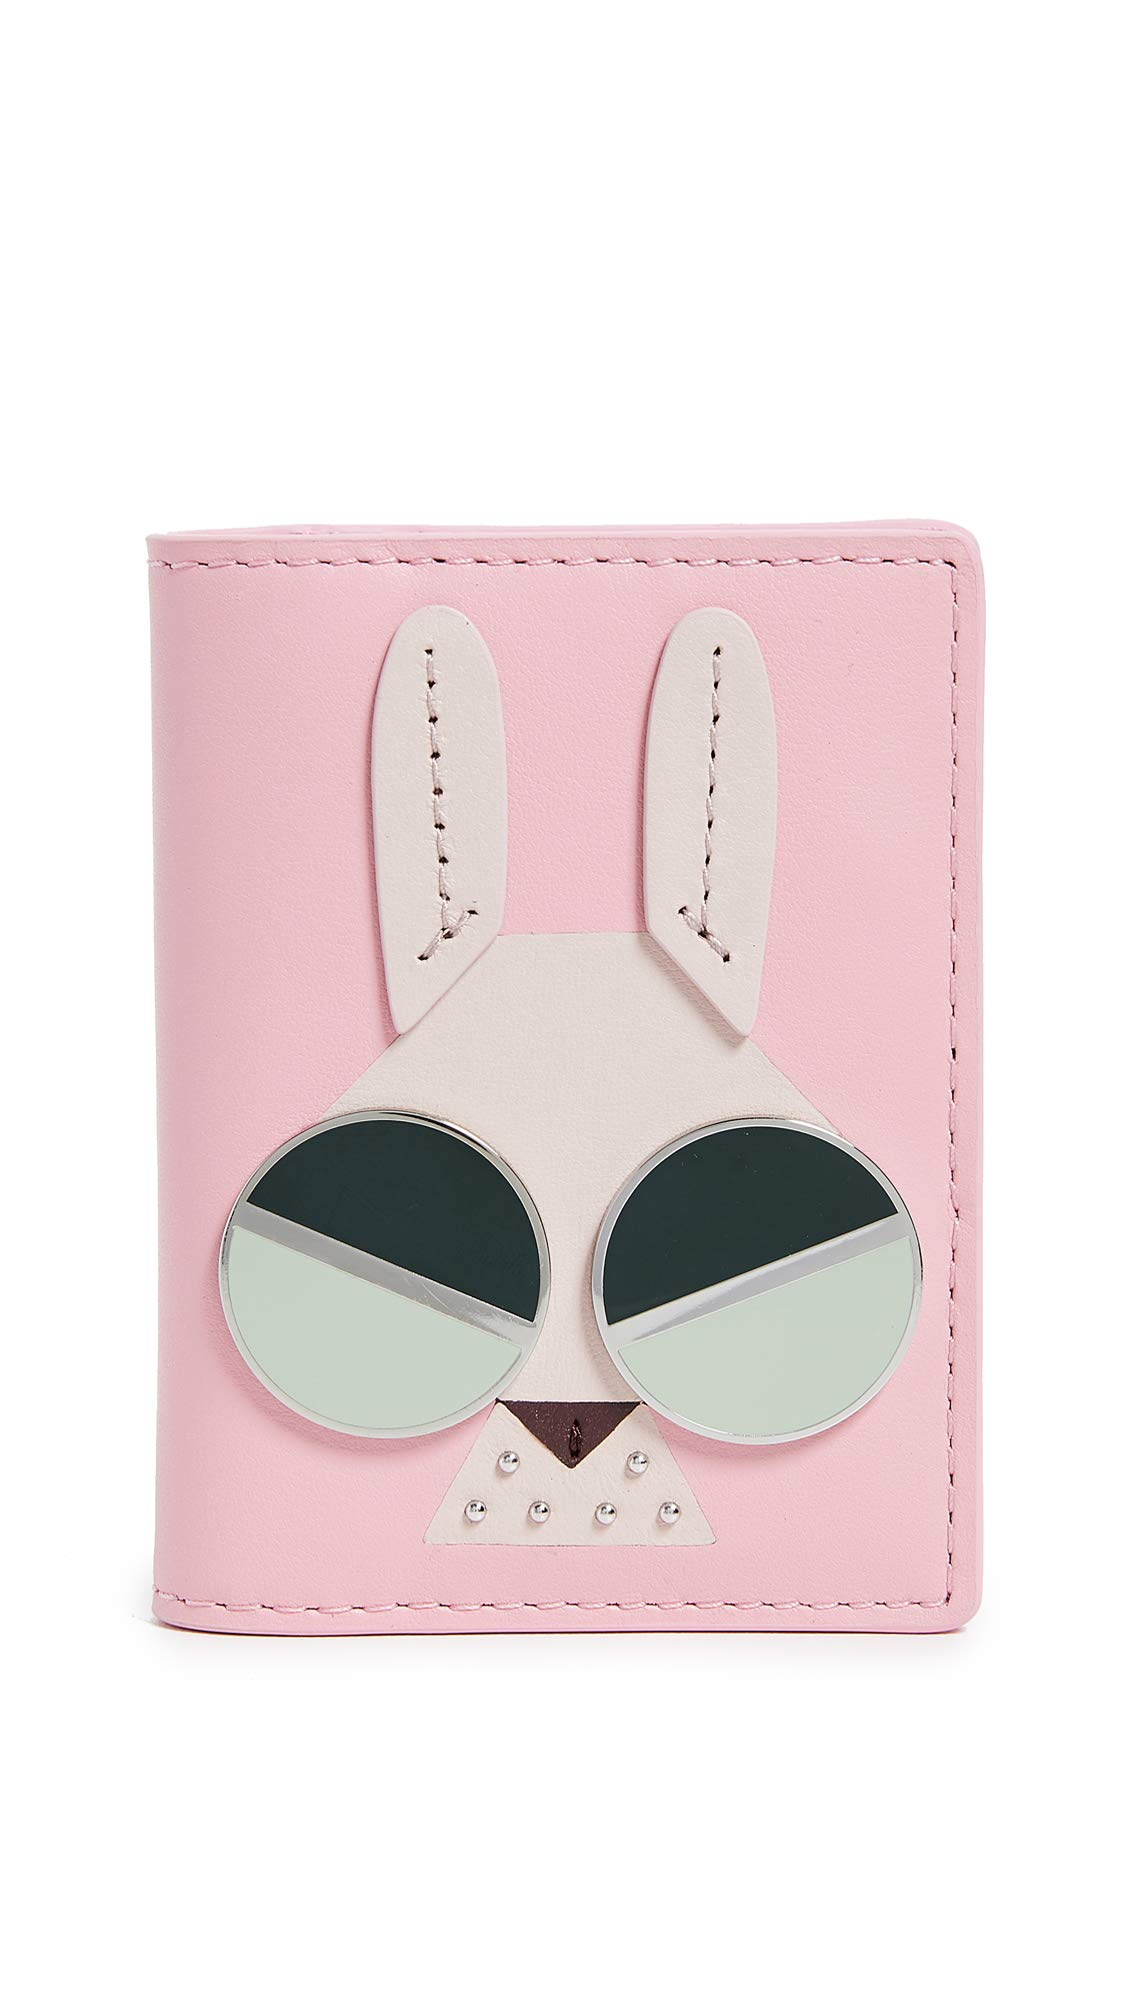 Kate Spade New York Women's Spademals Money Bunny Bifold Card Case, Rococo Pink, One Size